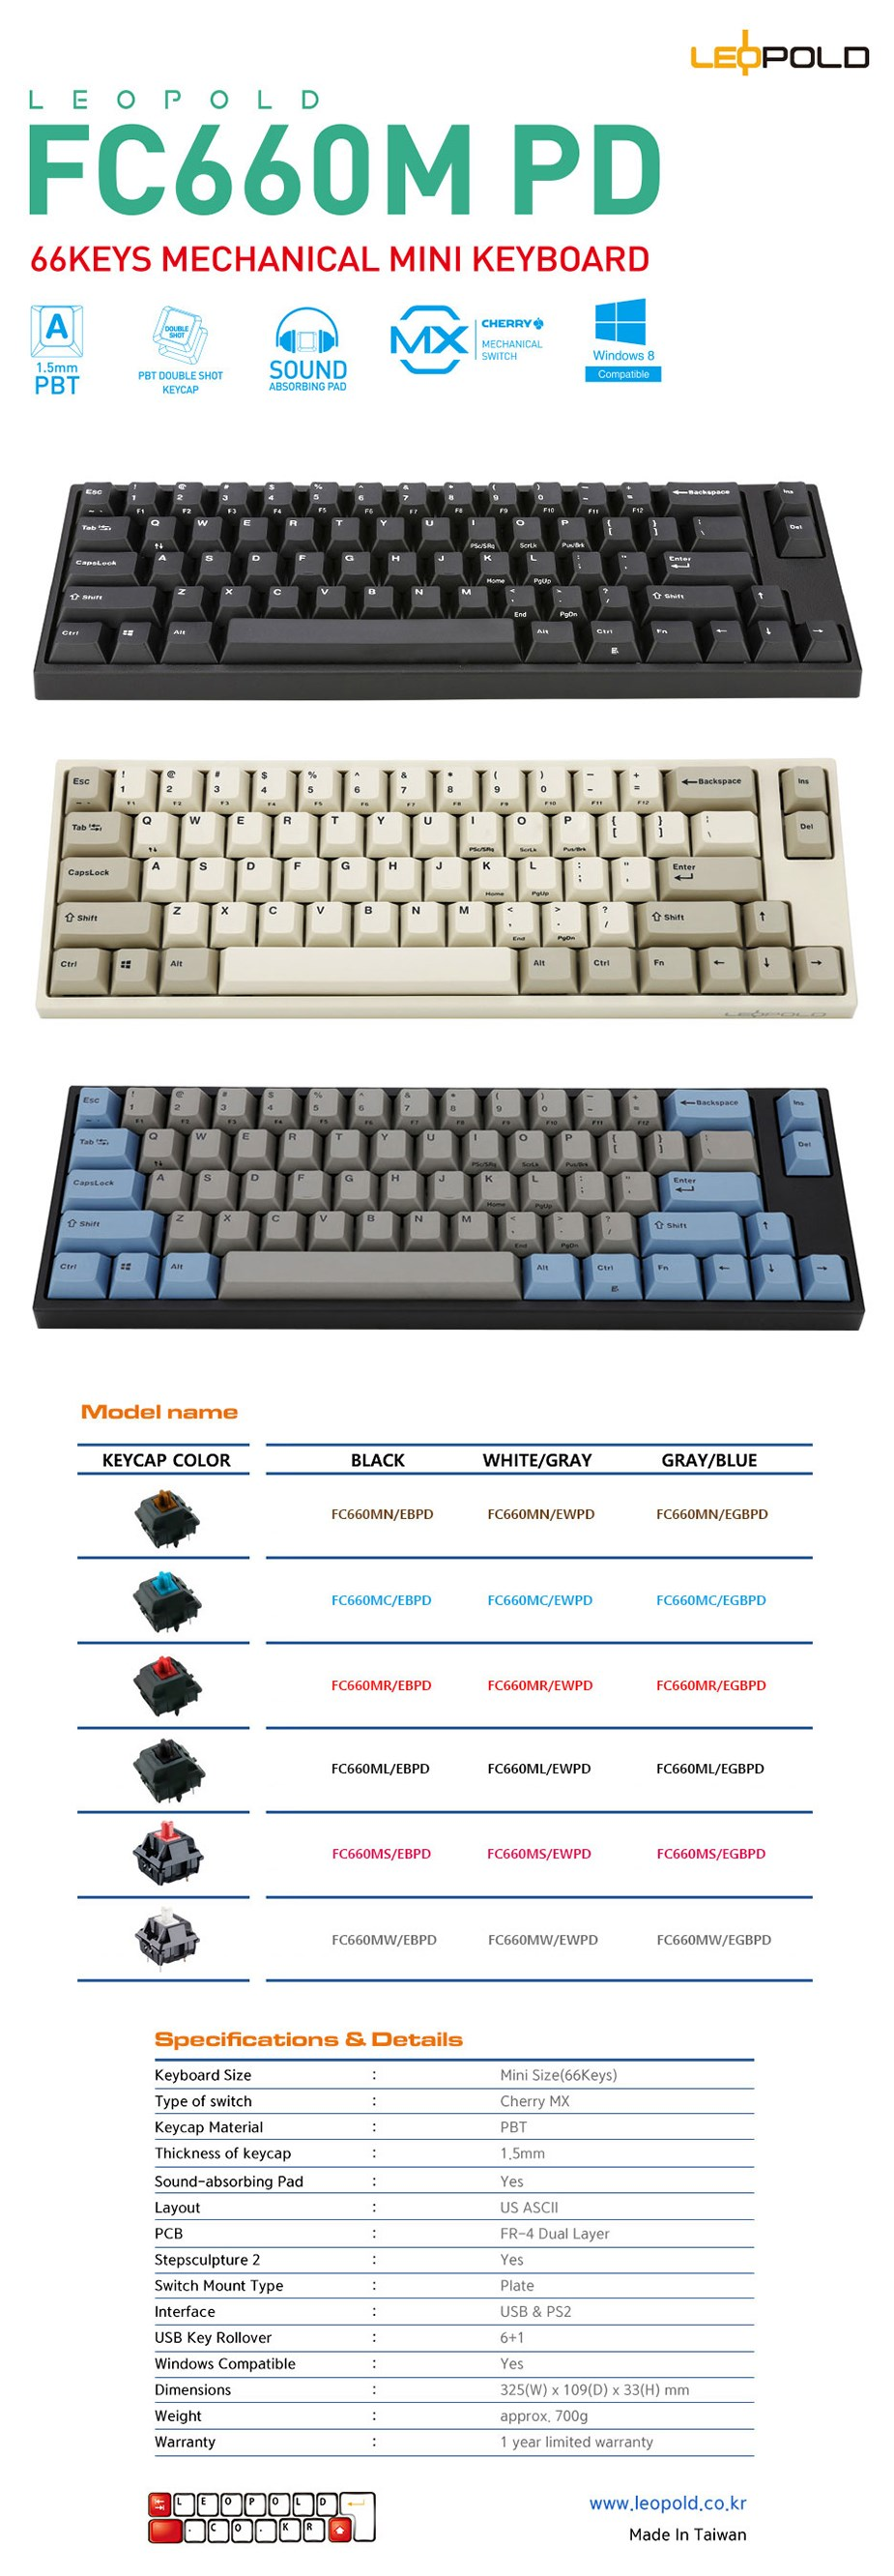 Leopold FC660M White/Gray PD Mini Mechanical Keyboard - Cherry MX Blue - Desktop Overview 1